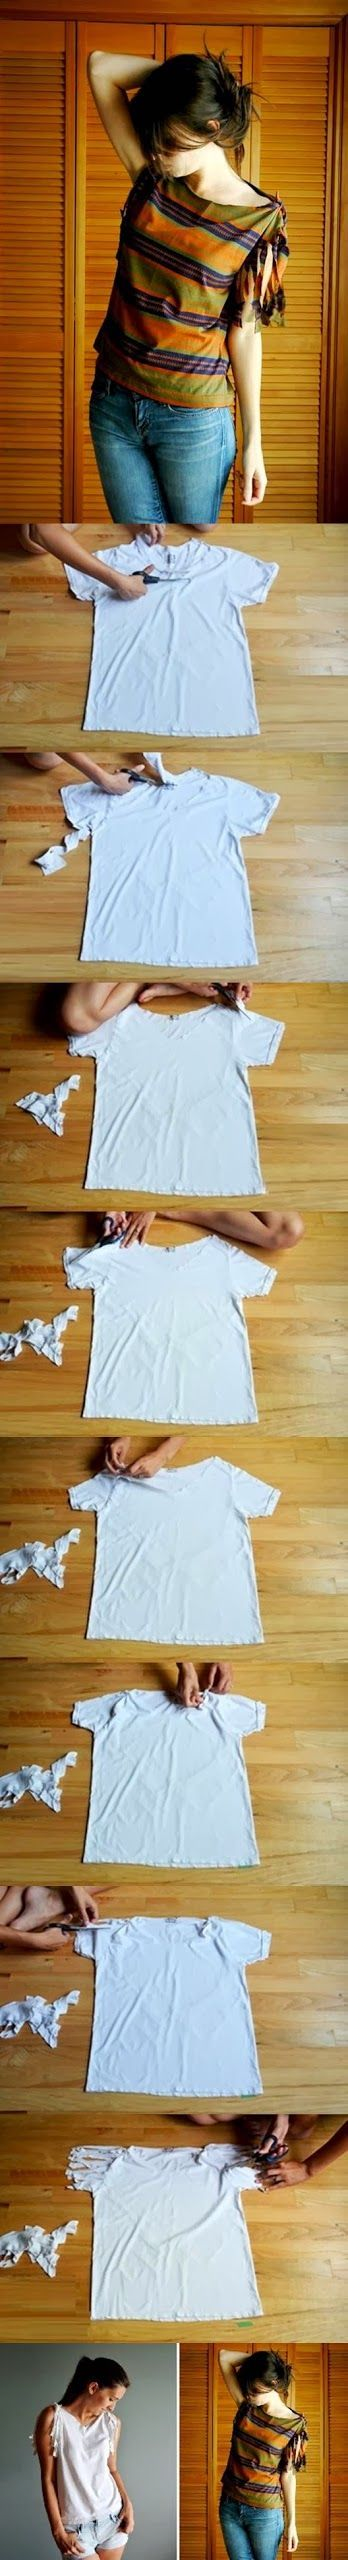 DIY : No-Sew Refashion a Basic Tee                                                                                                                                                     More